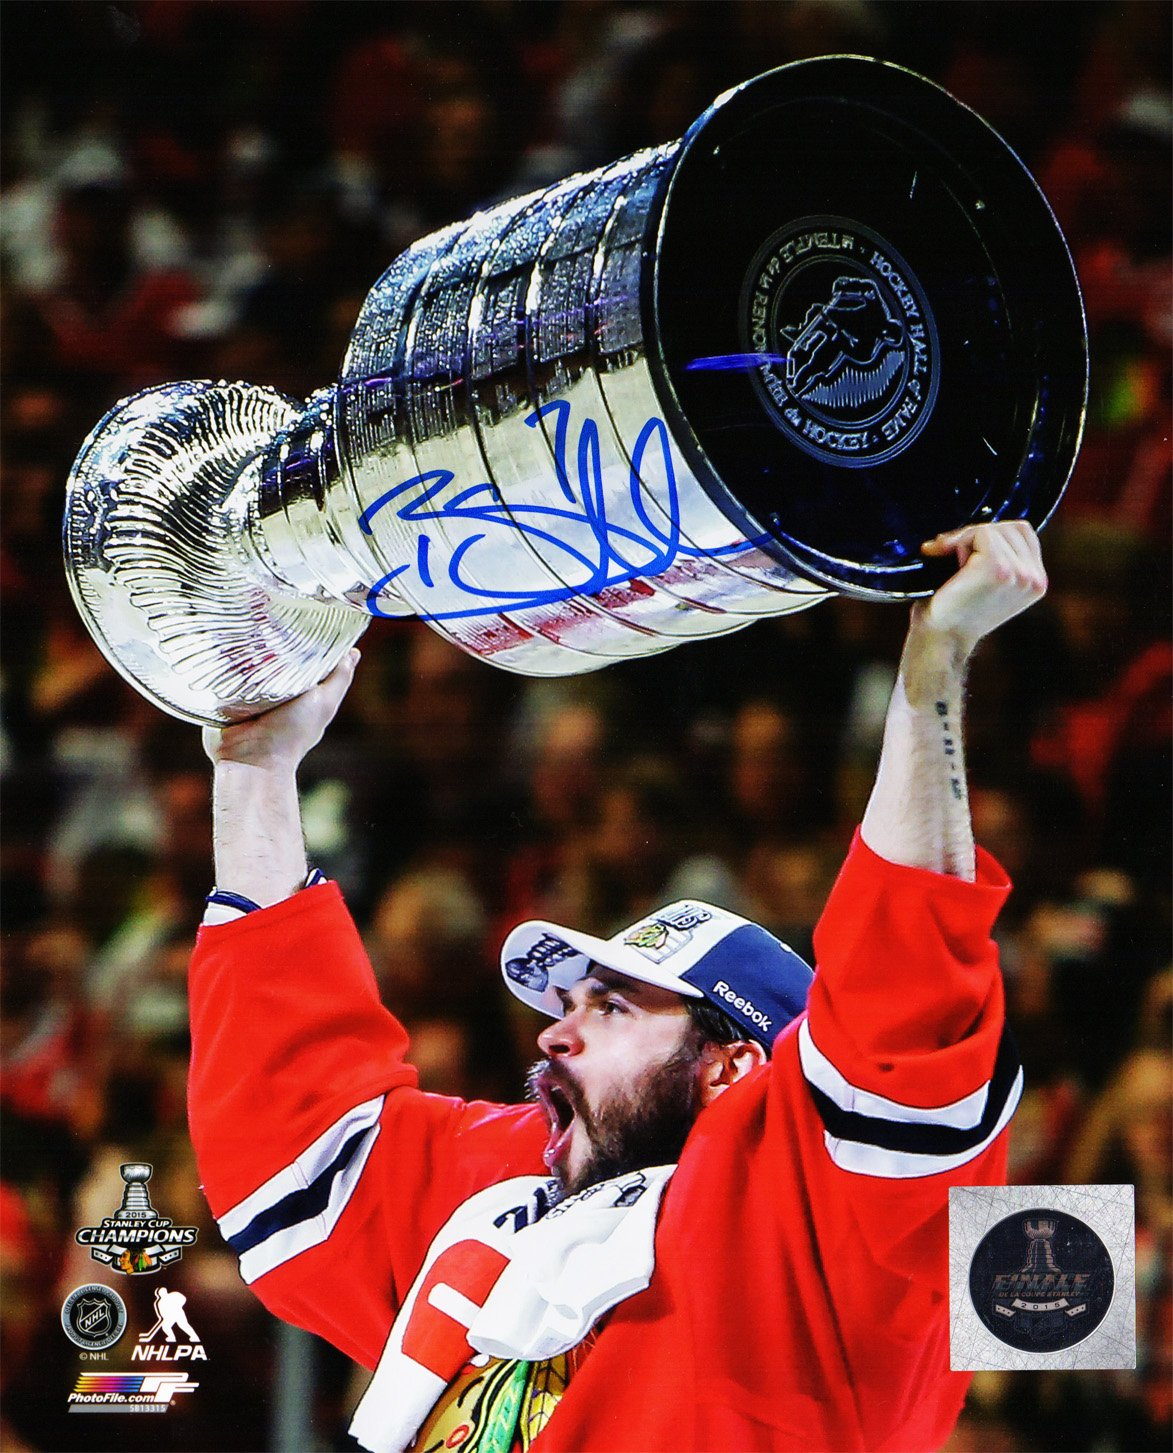 Brent Seabrook Signed Chicago Blackhawks 2015 Stanley Cup Trophy 8x10 Photo at Amazons Sports Collectibles Store